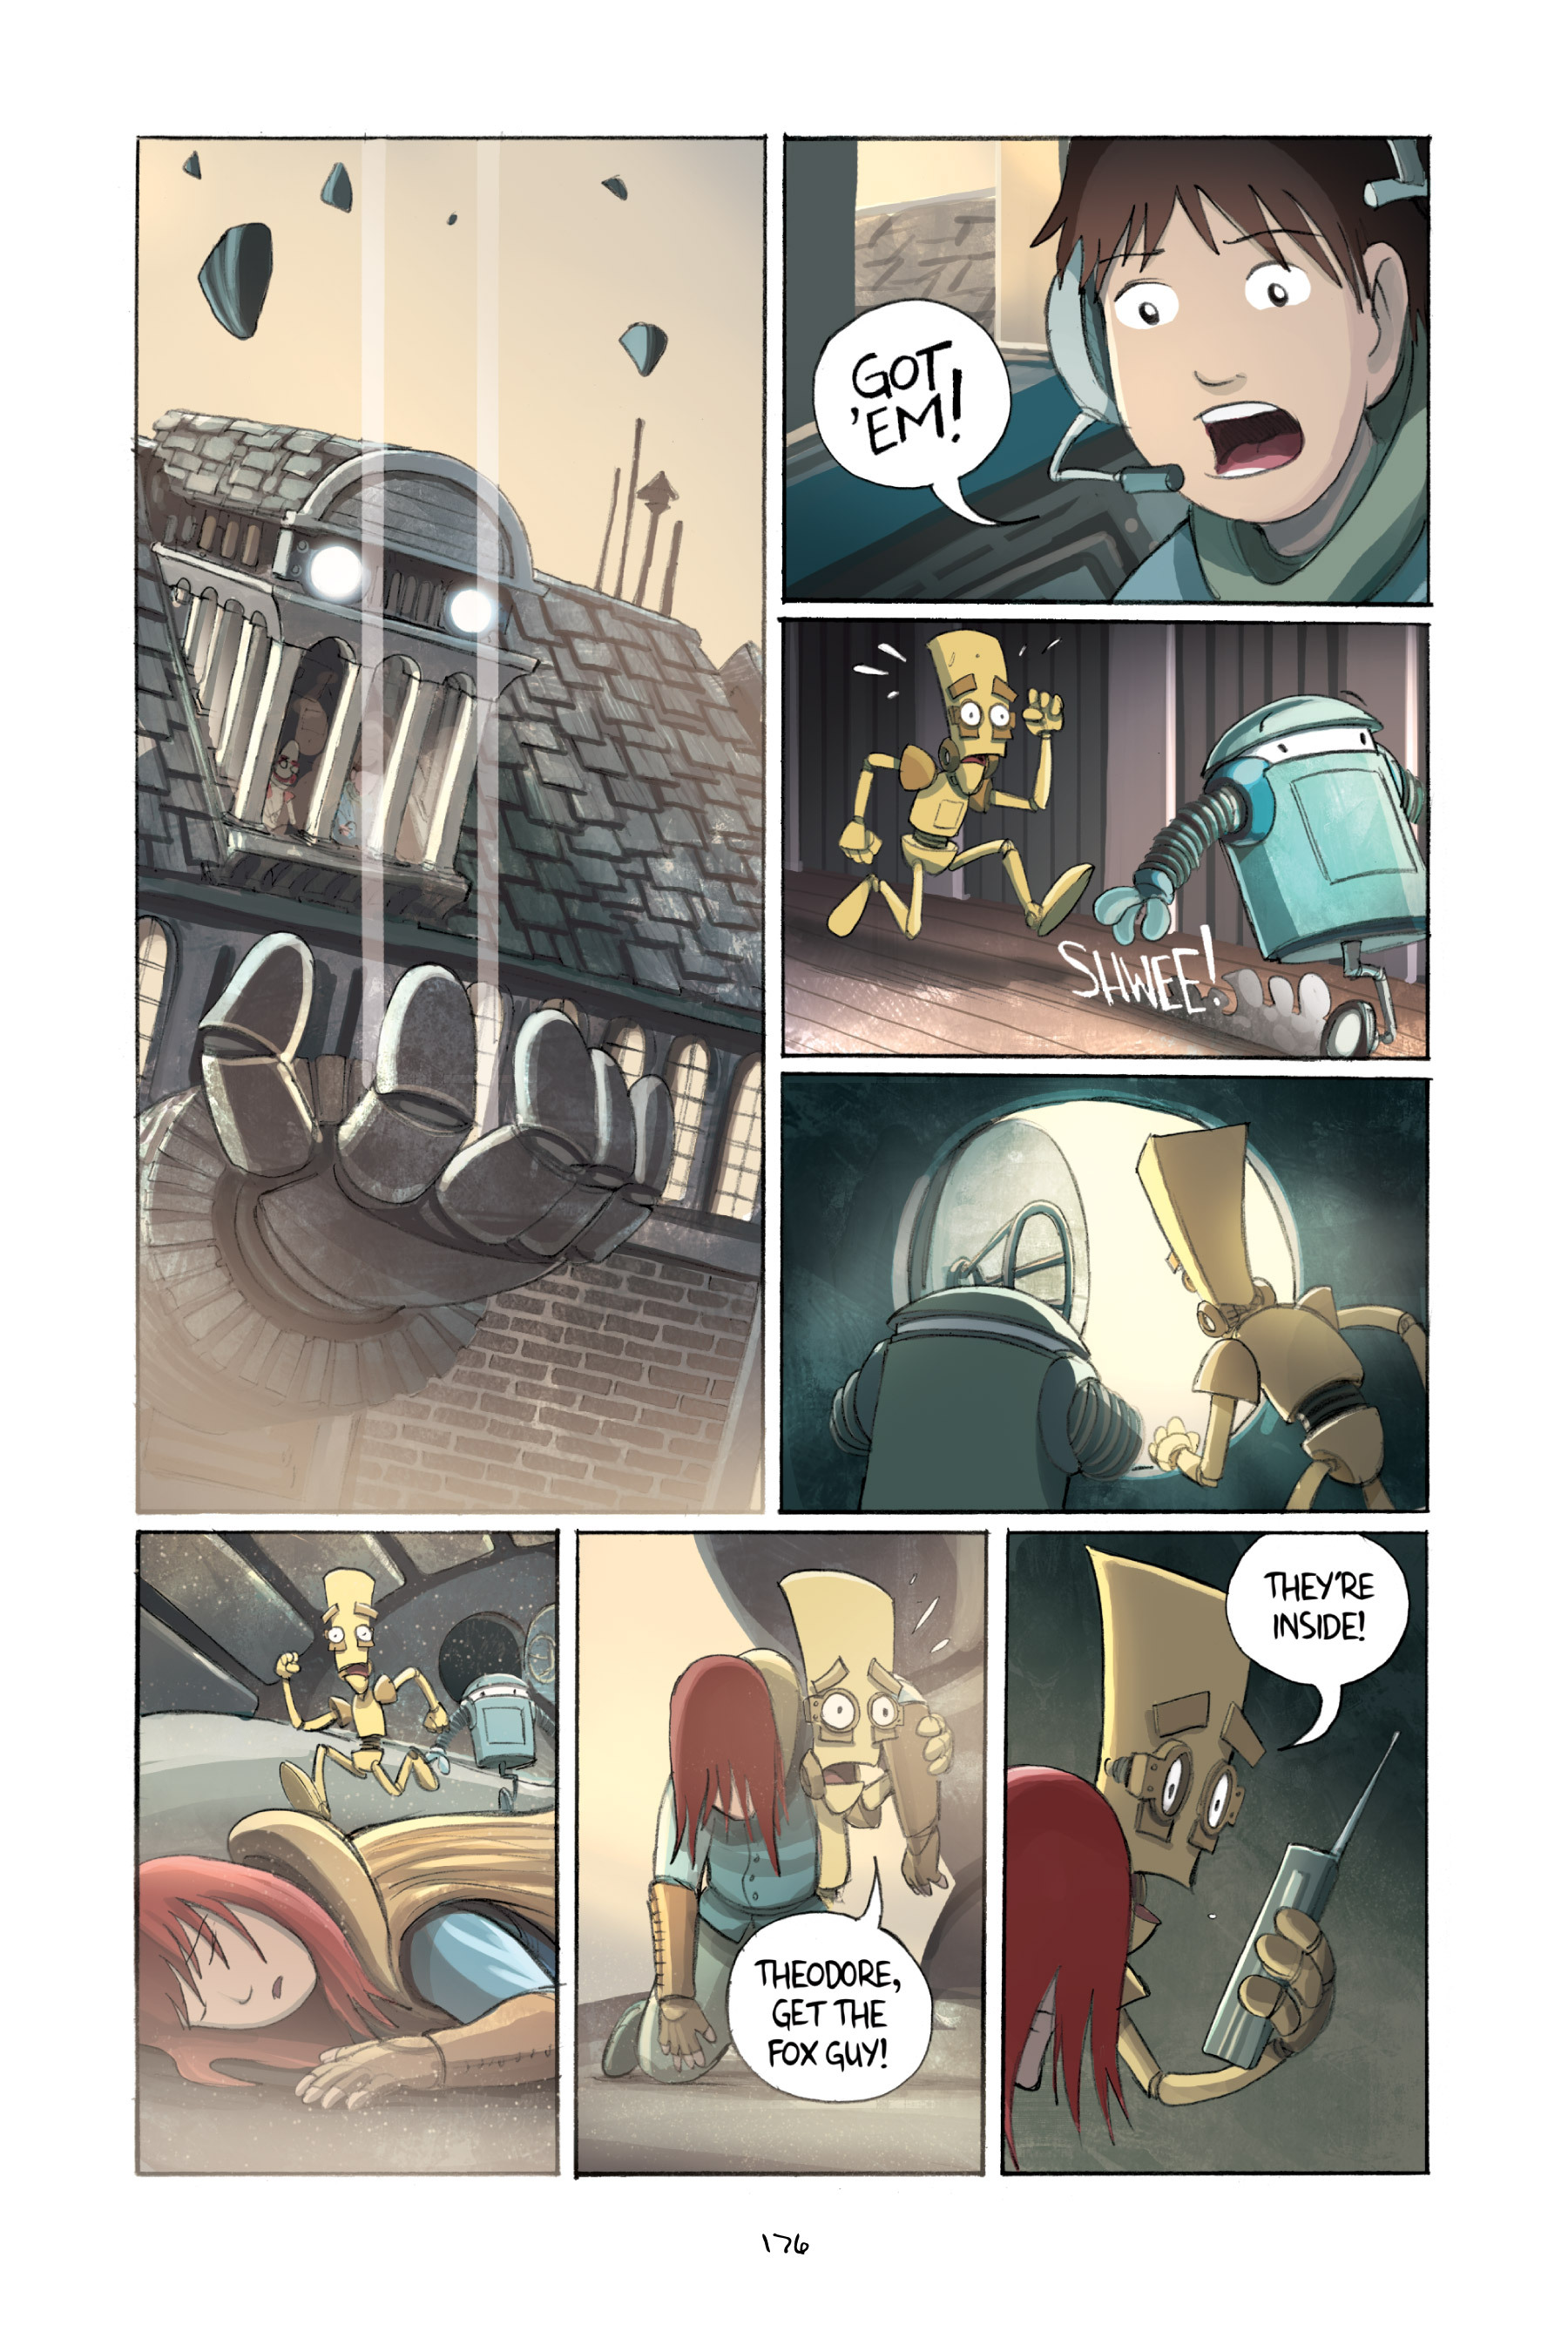 Read online Amulet comic -  Issue #2 - 175